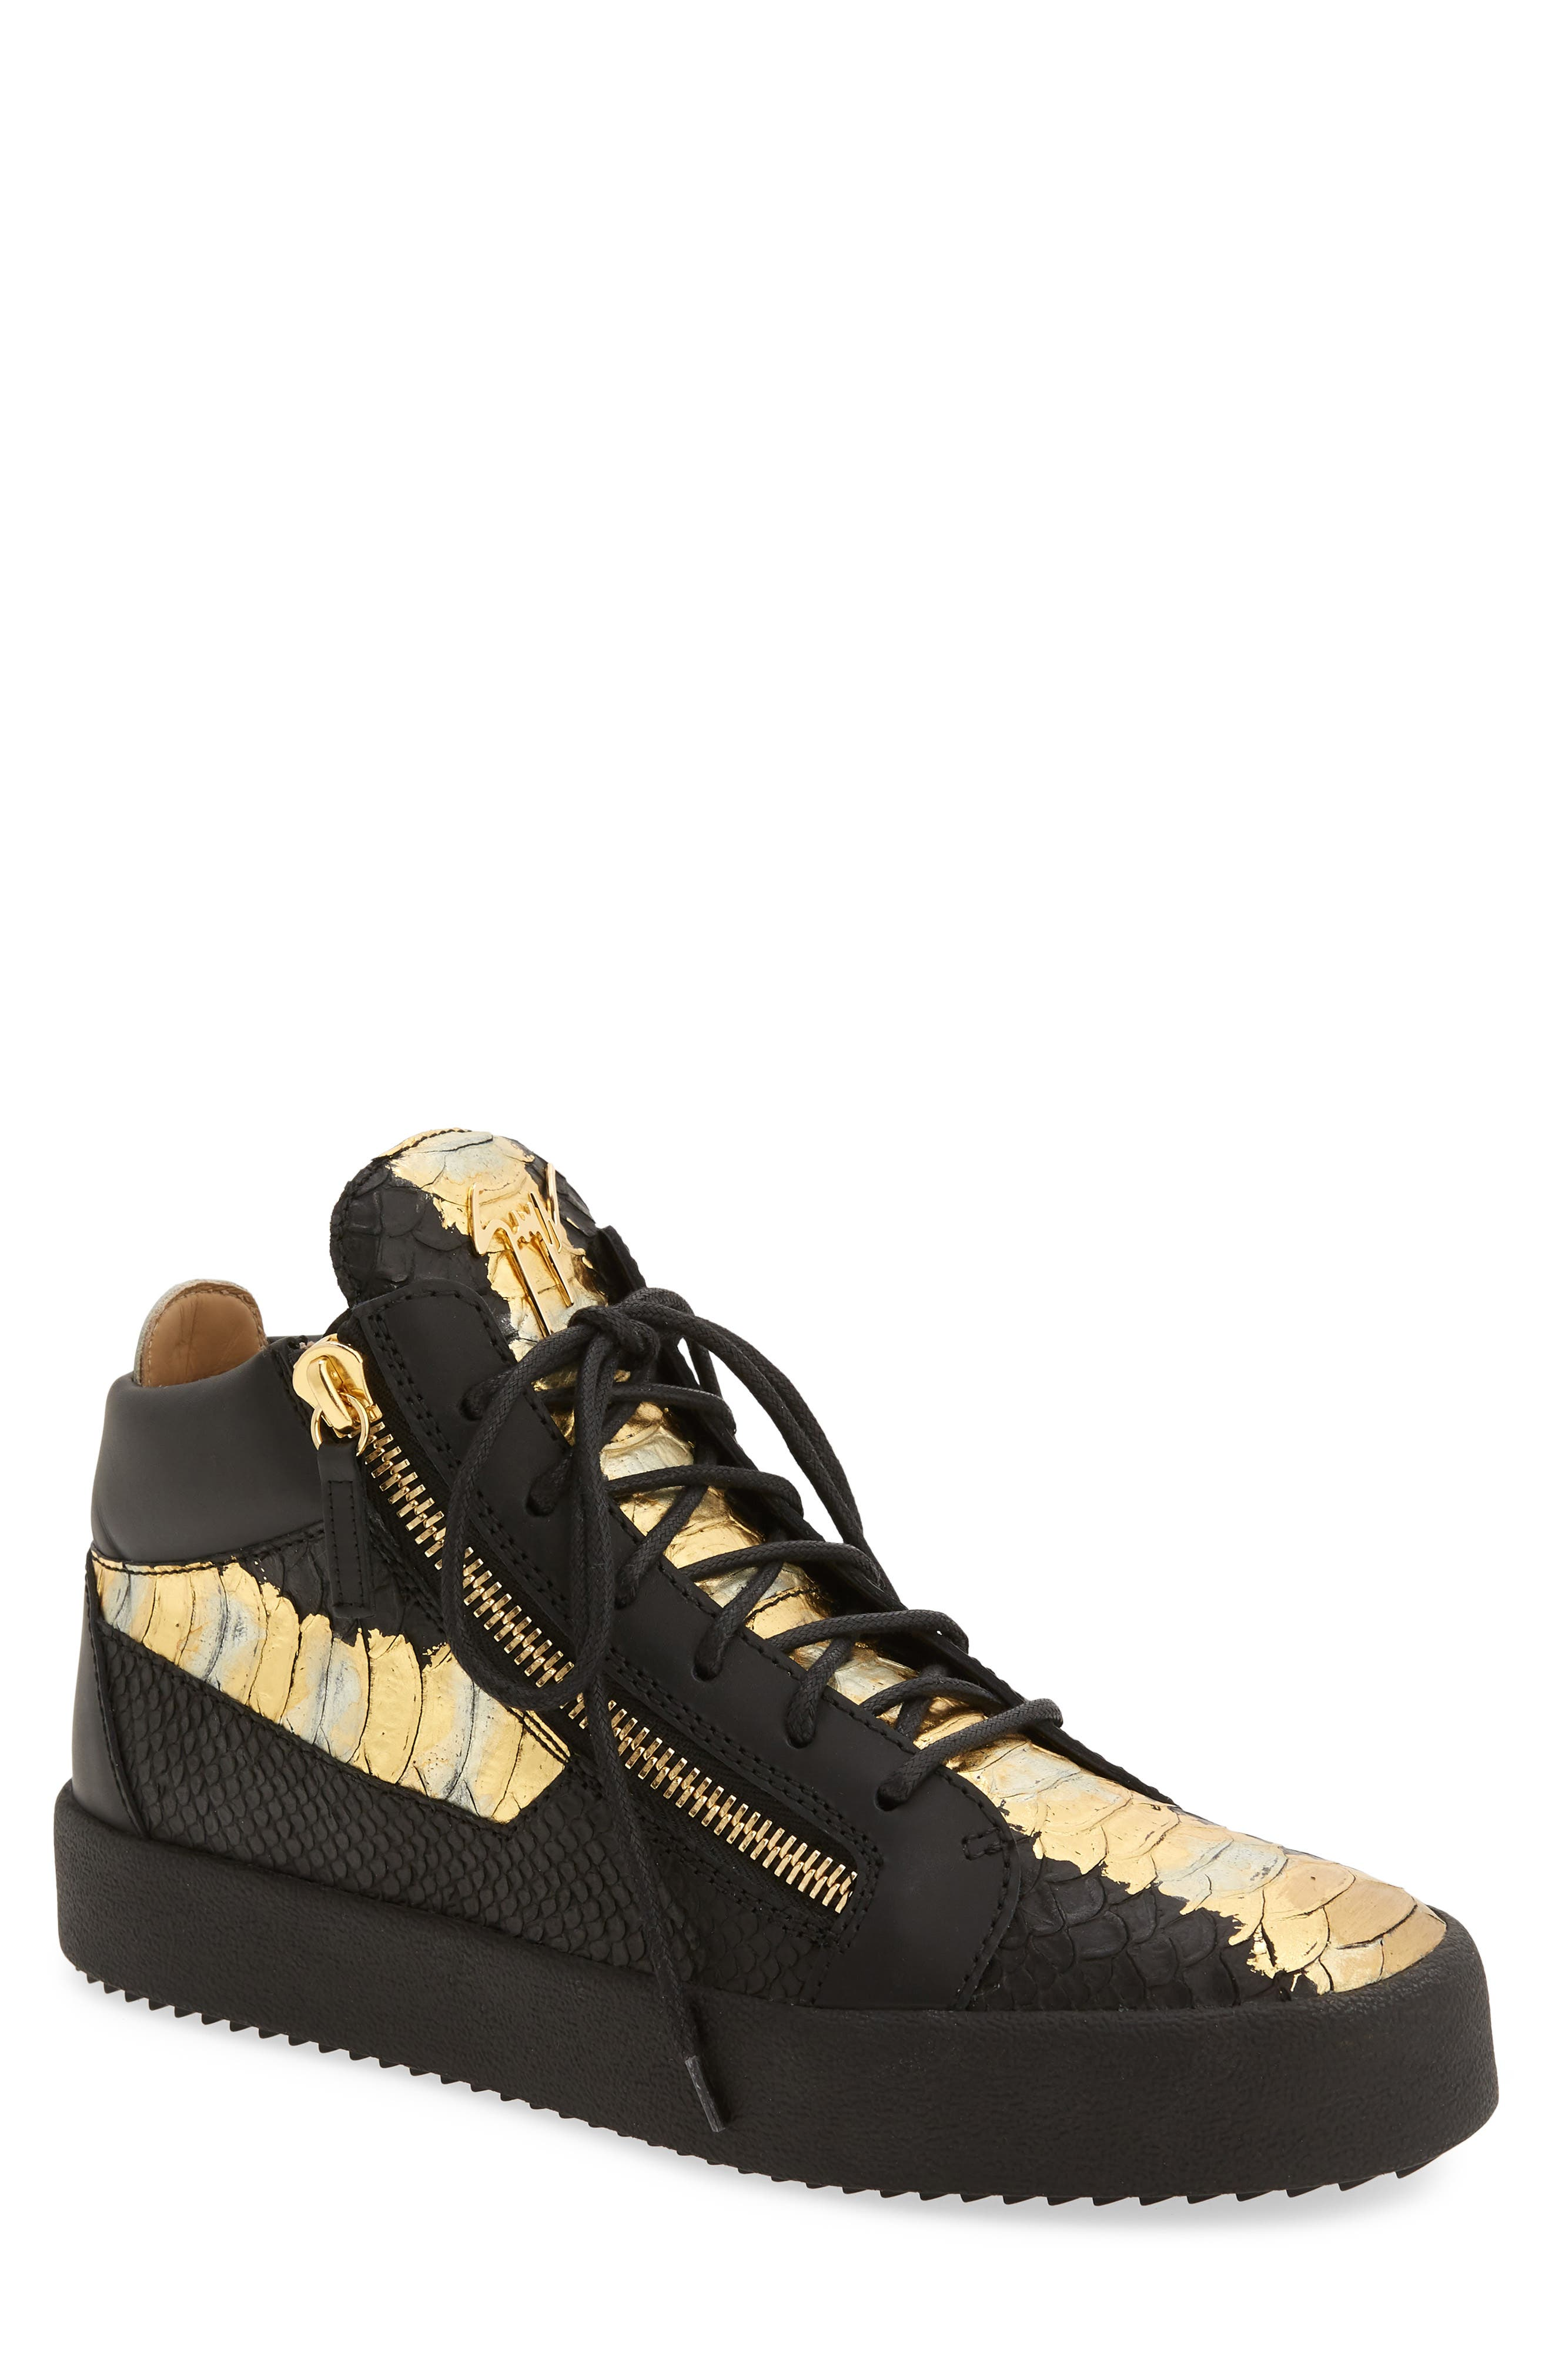 High-Top Sneaker,                             Main thumbnail 1, color,                             Black Leather